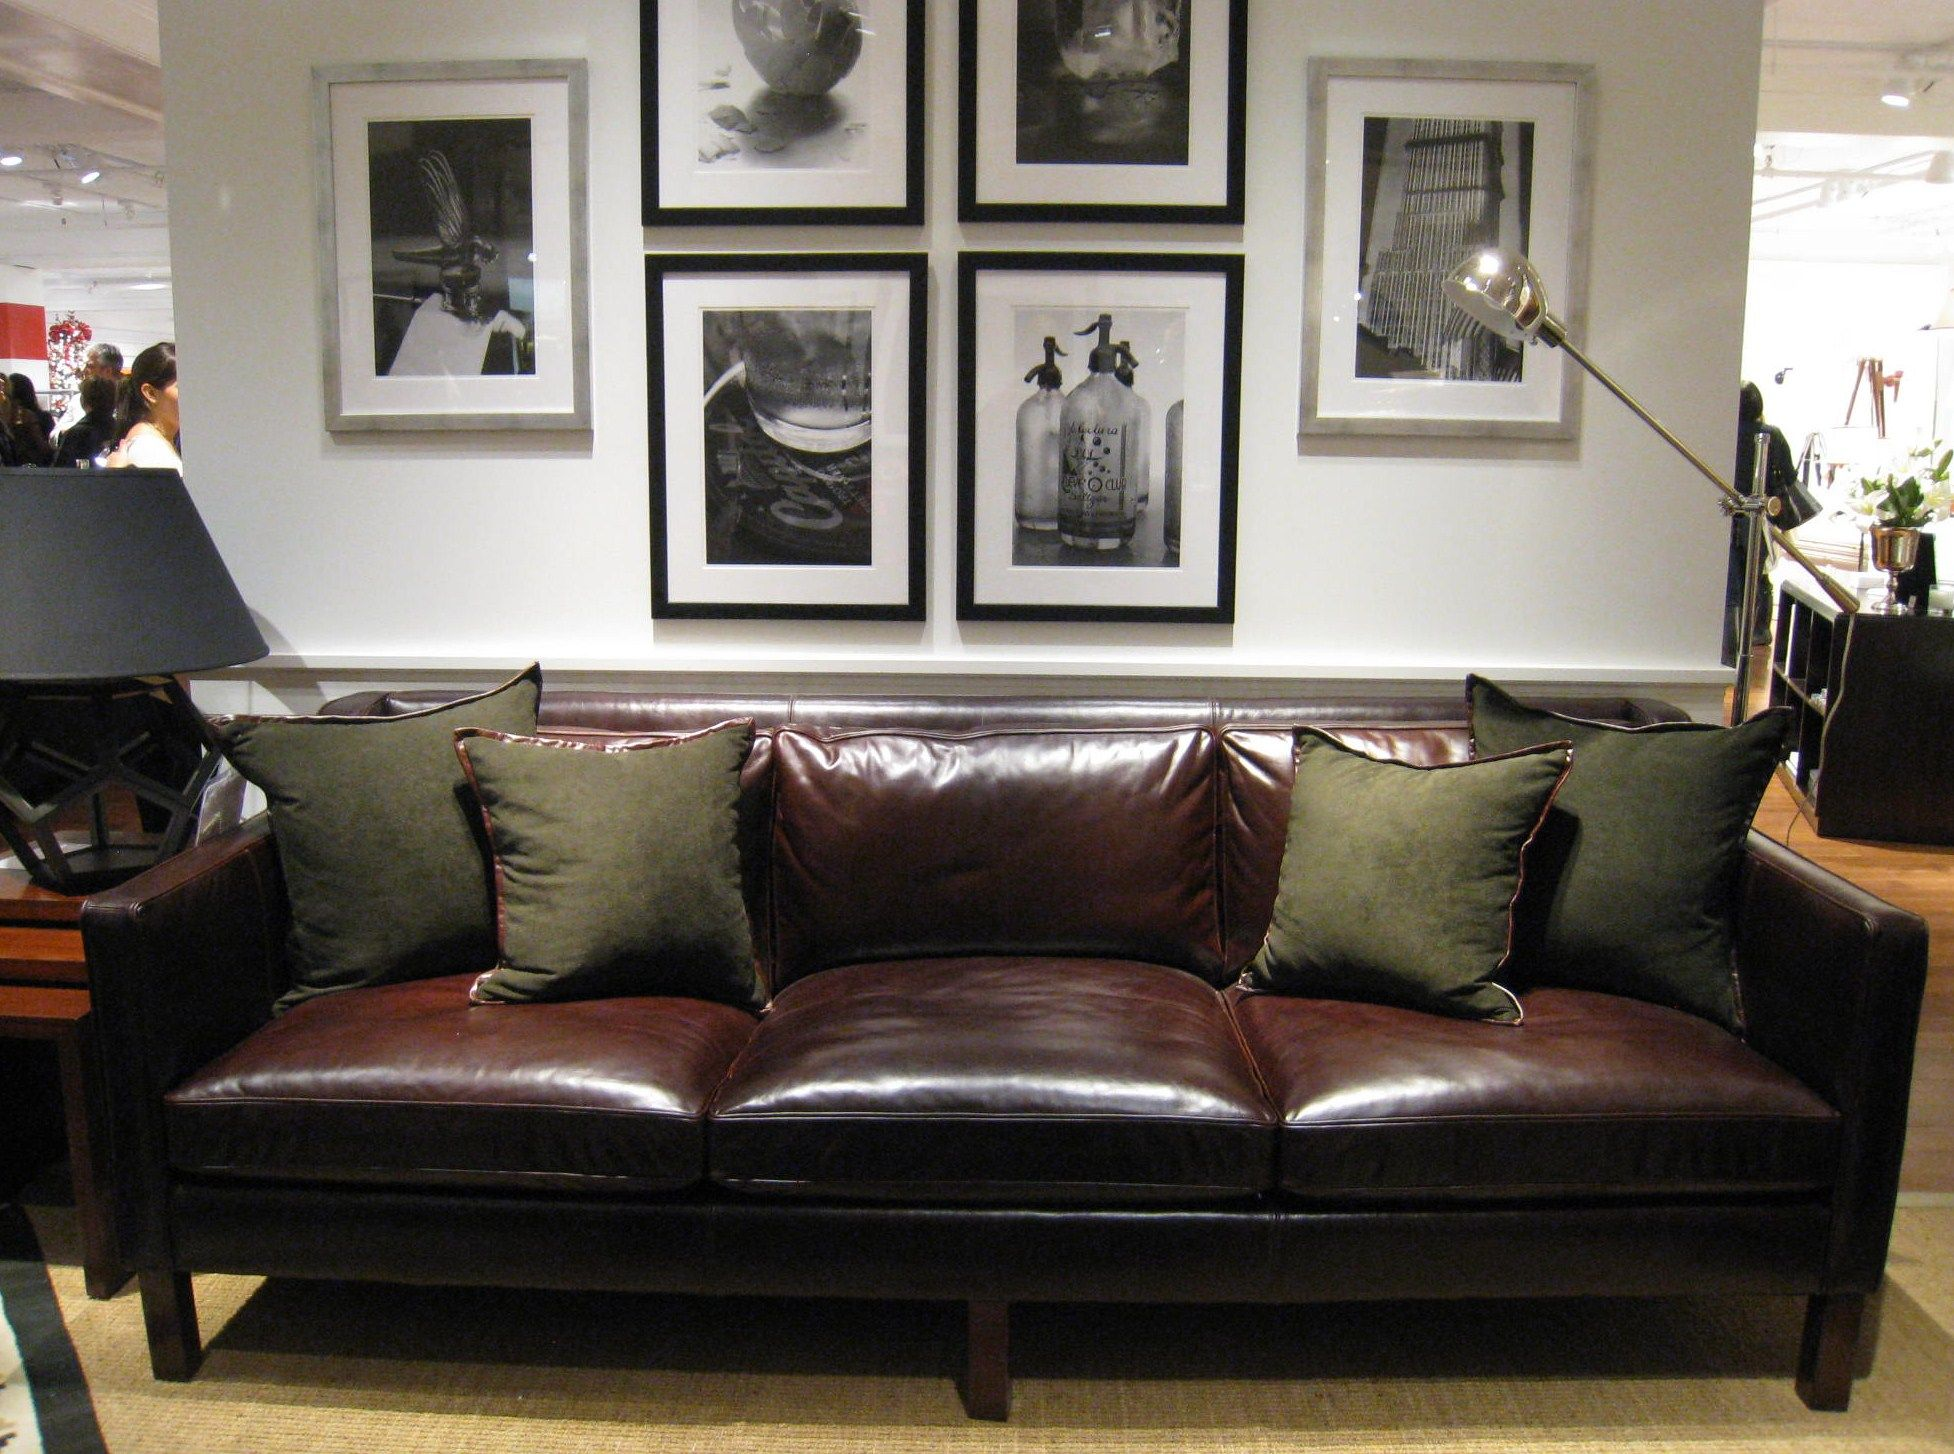 This Just In Furniture At Lord Taylor Bedroom Collections Furniture Ralph Lauren Bedroom Interior Decoration Bedroom